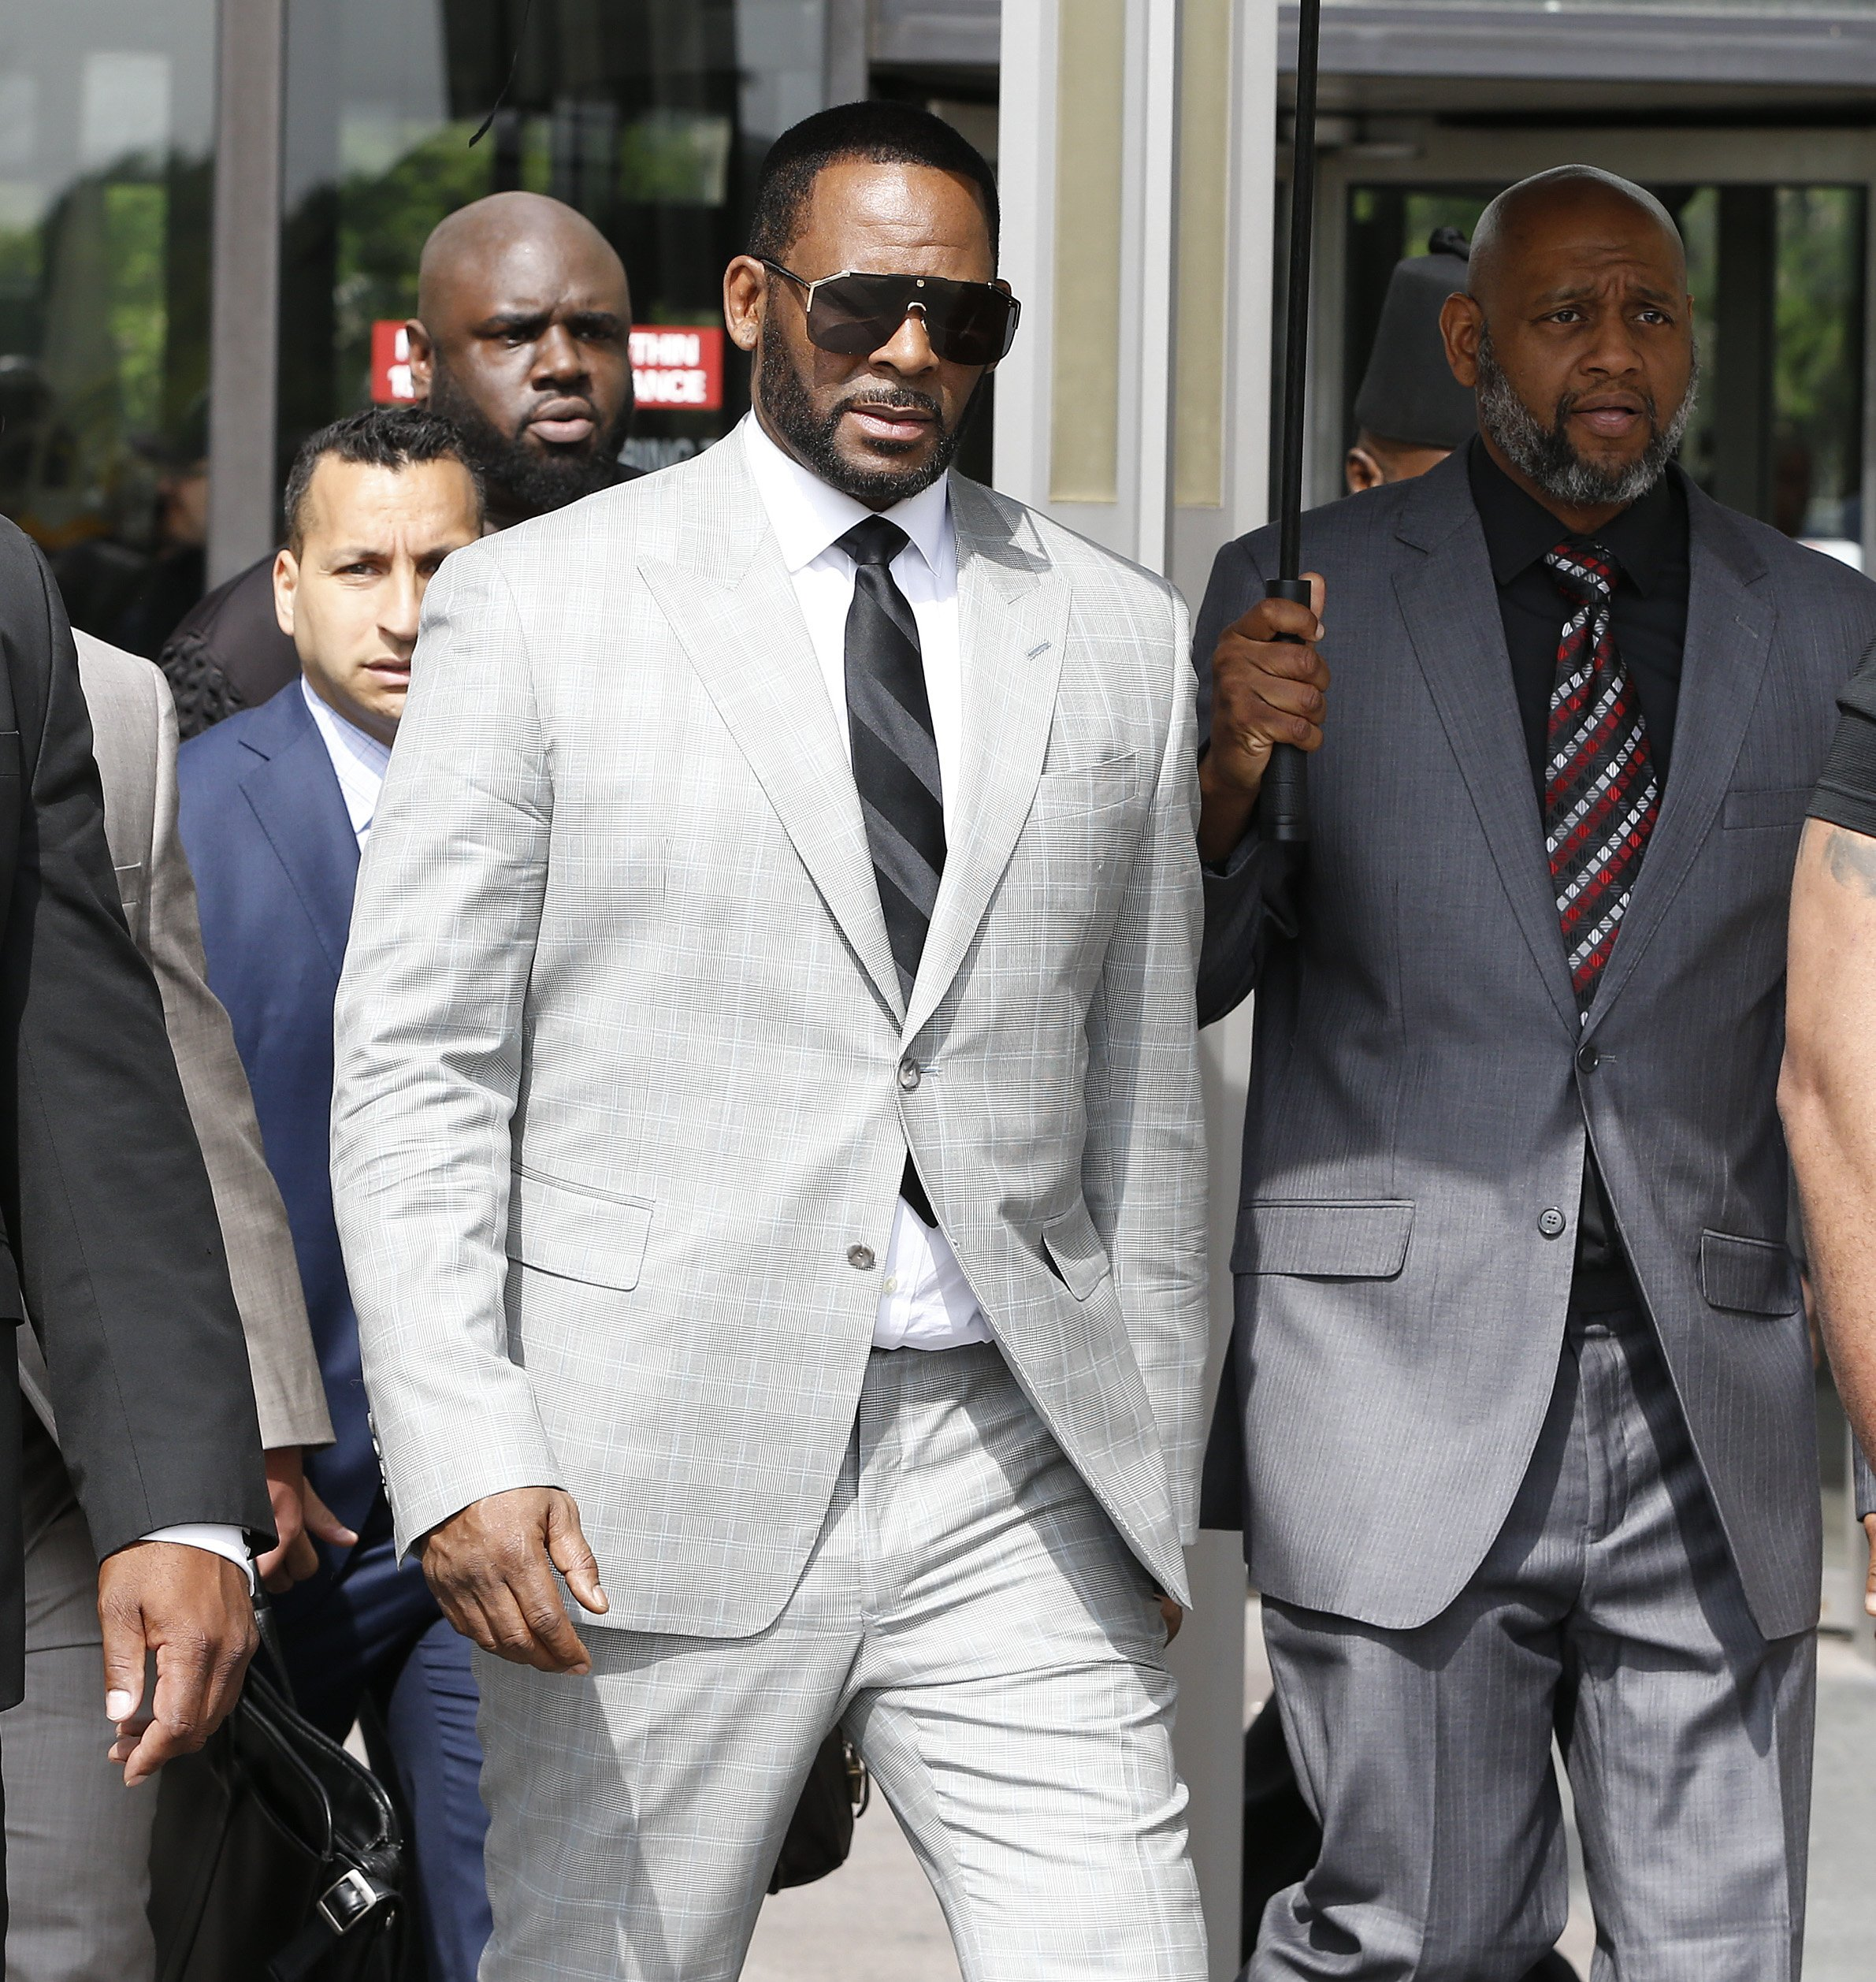 R. Kelly appearing in court as he faced new criminal sexual abuse charges in June 2019.   Photo: Getty Images